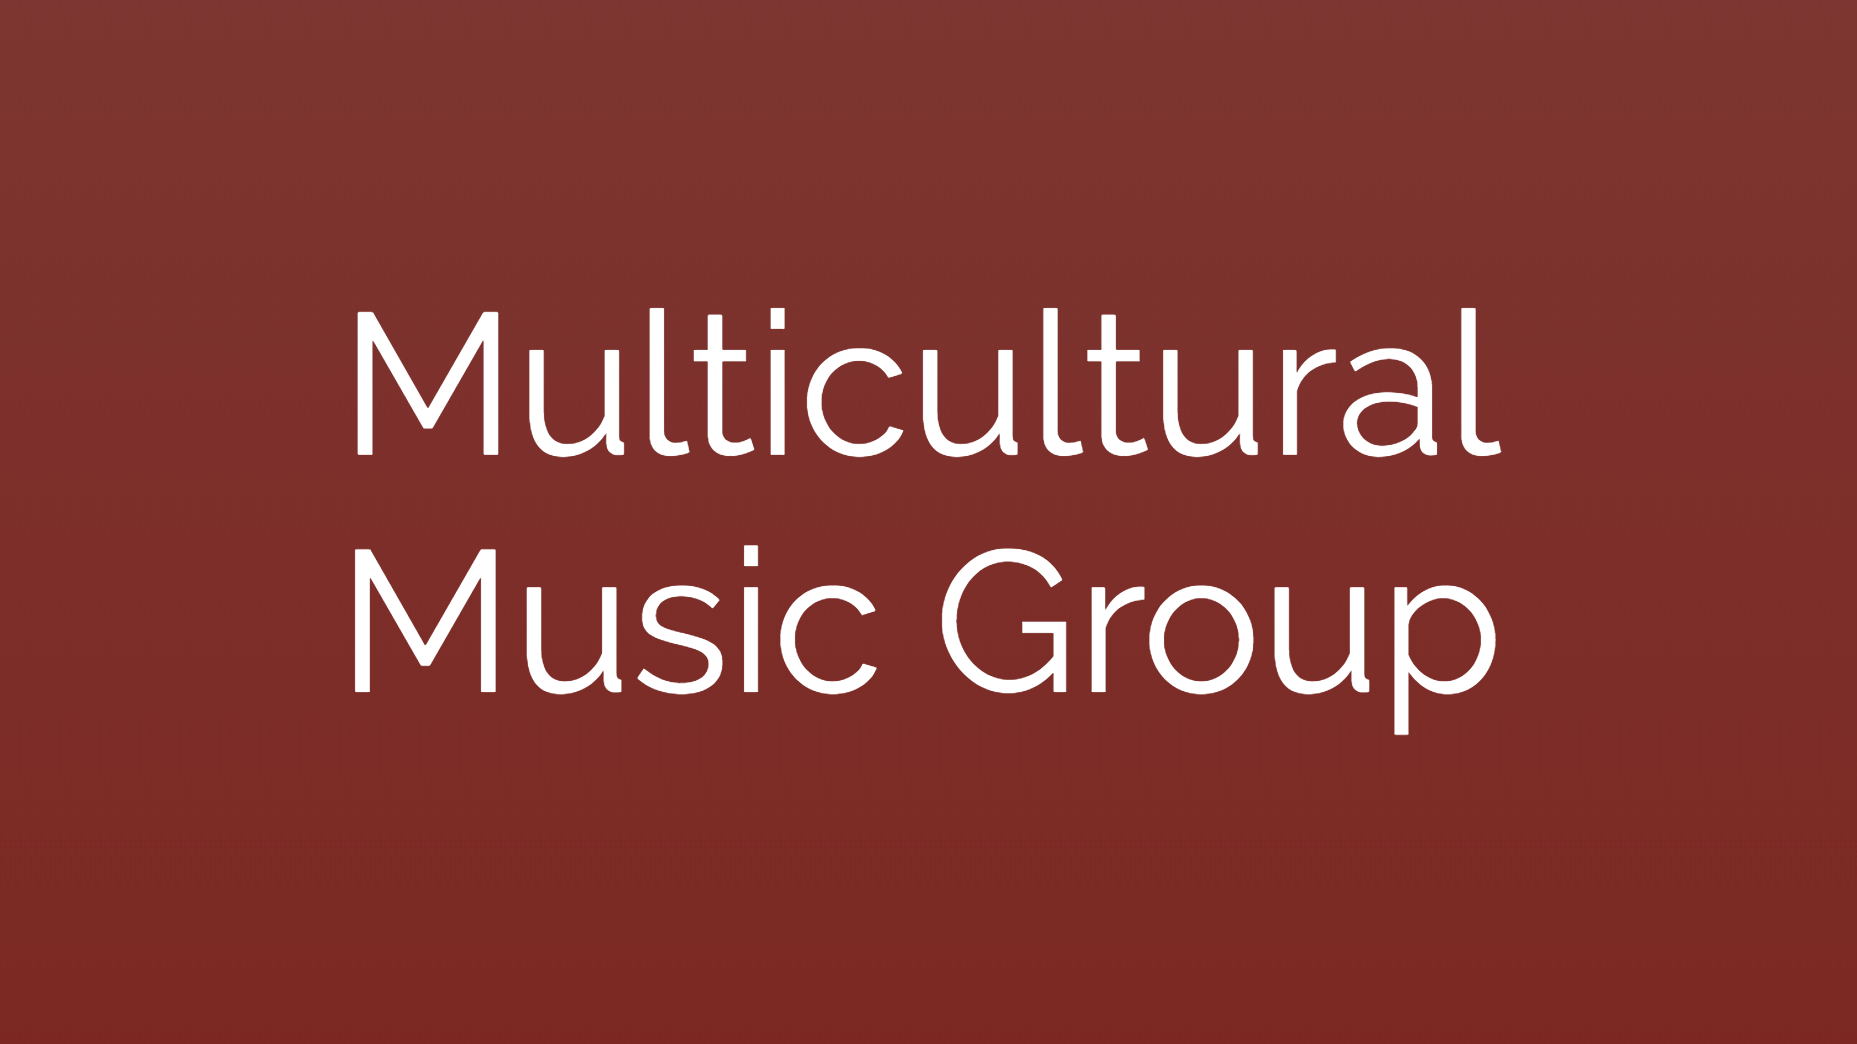 A New York City-based program designed to support local schools by providing performances, instruction, and professional development in multicultural music as a tool to promote global understanding, cultural awareness, and academic achievement. Visit their site to learn more and browse their publications!